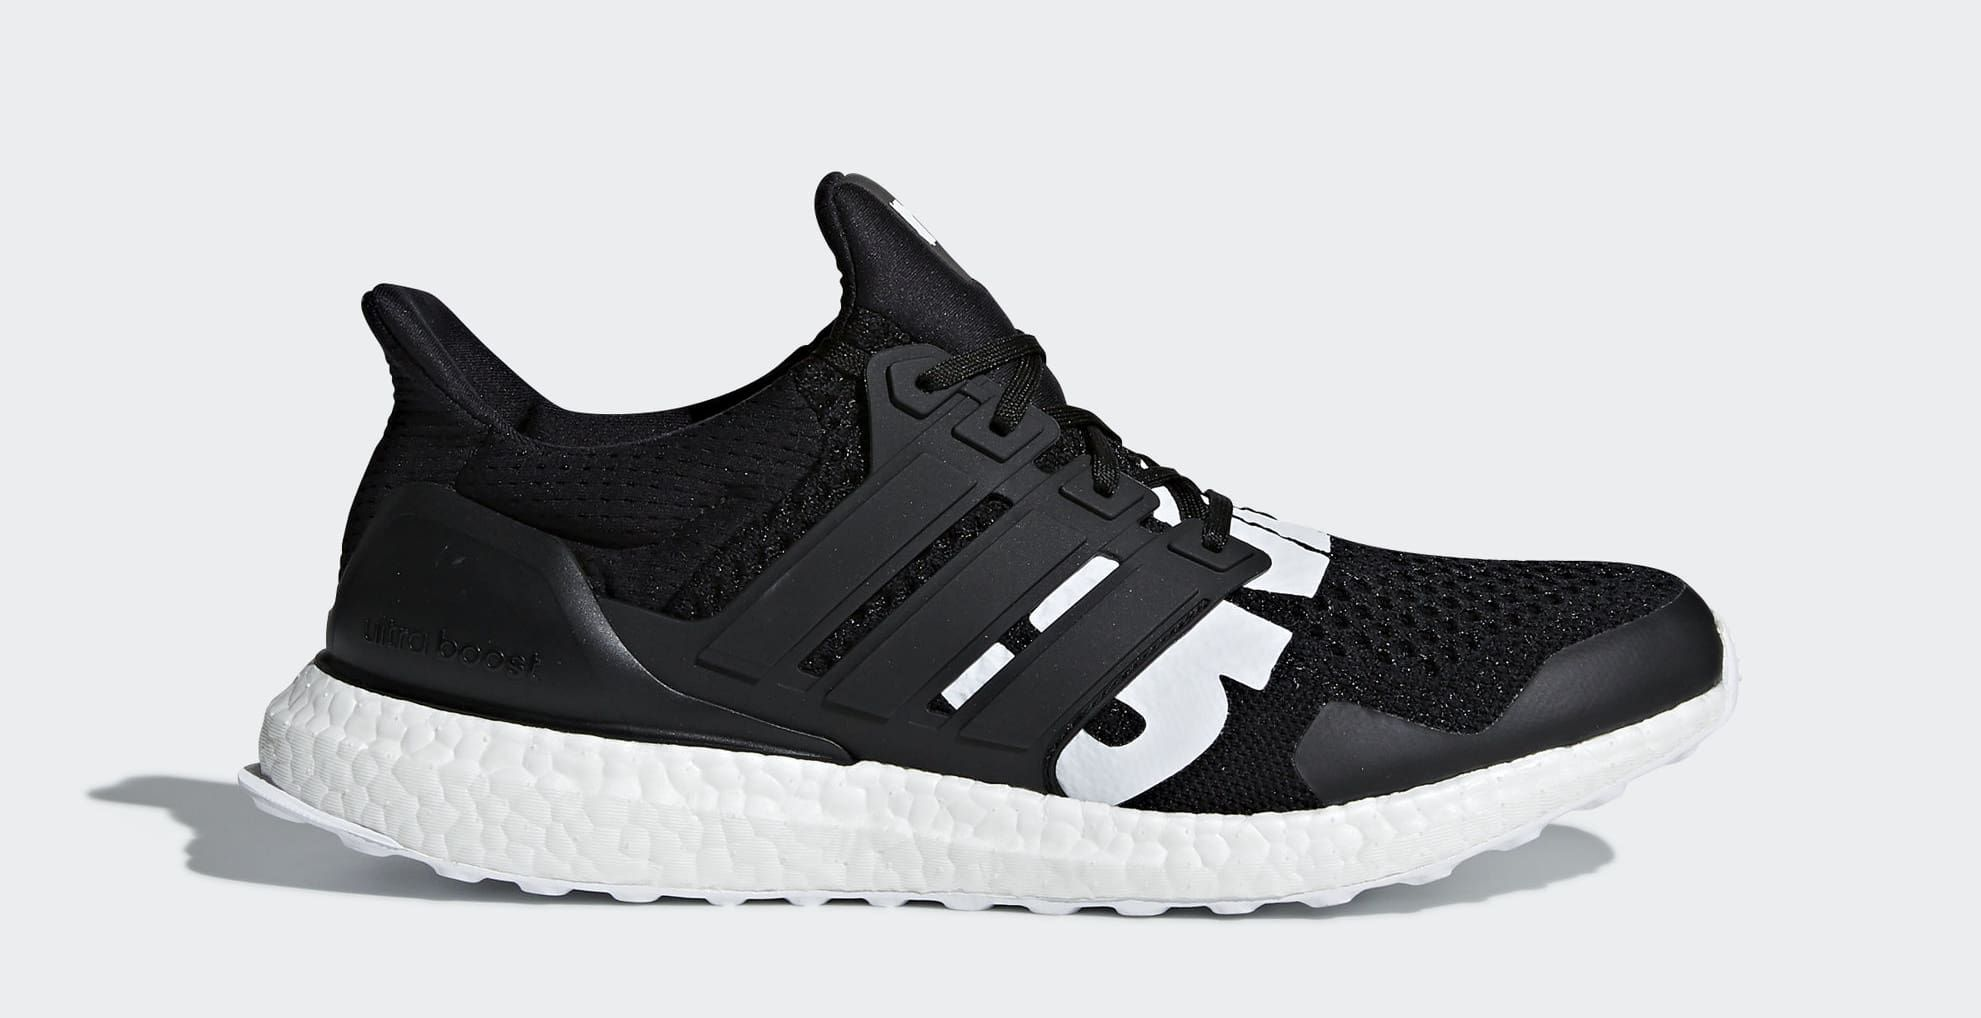 Undefeated x Adidas Ultra Boost Adidas ultra boost shoes